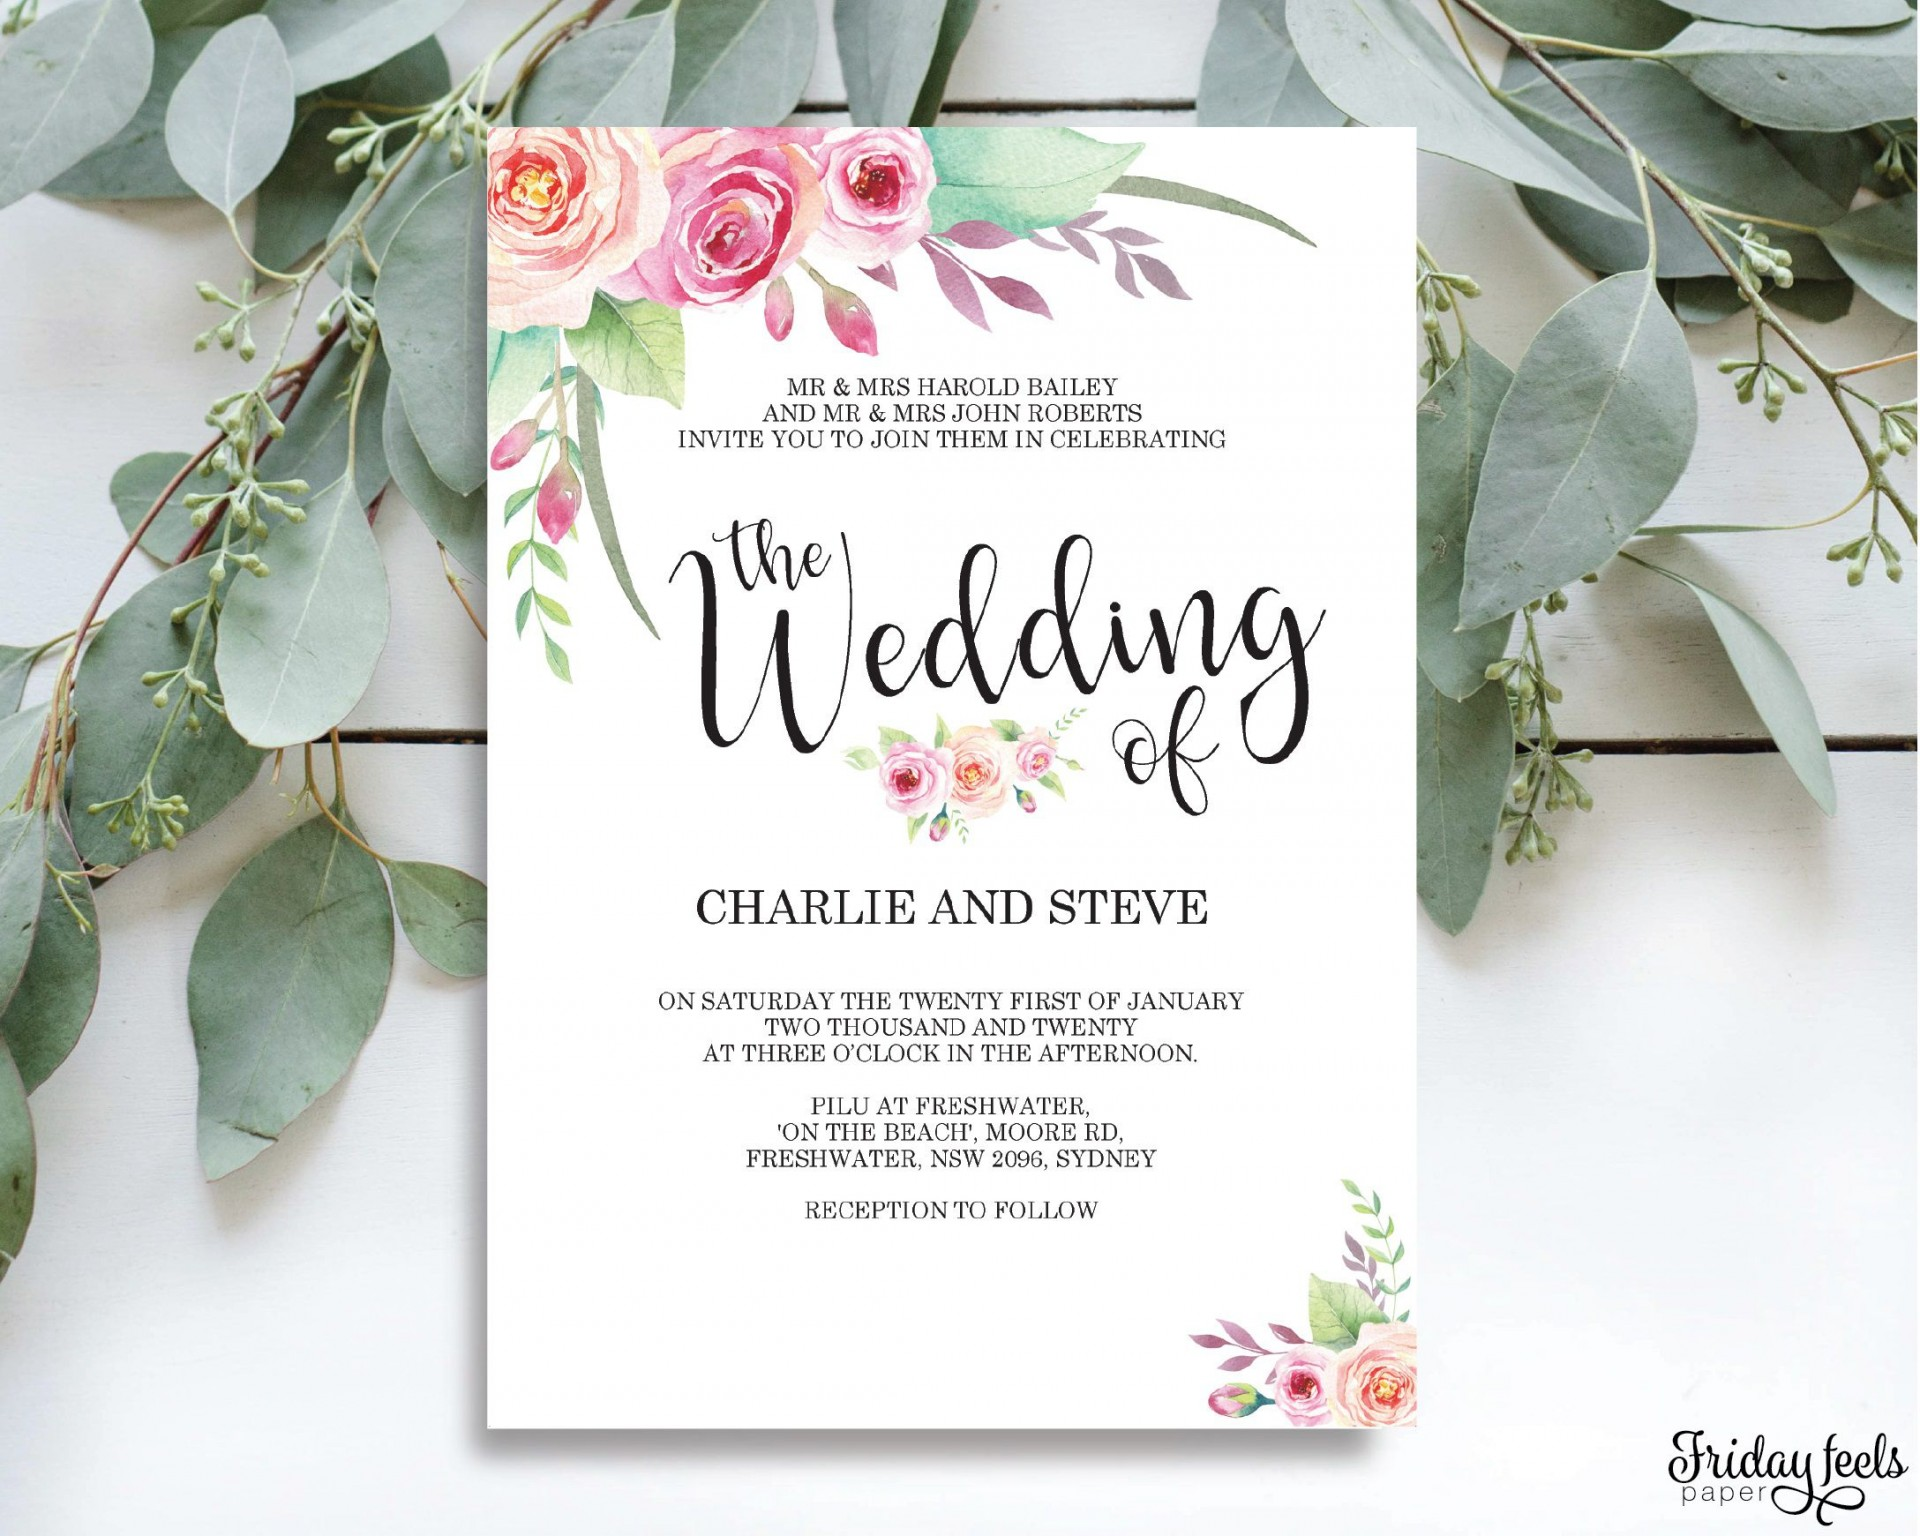 008 Unbelievable Editable Wedding Invitation Template Highest Clarity  Templates Tamil Card Free Download Psd Online1920